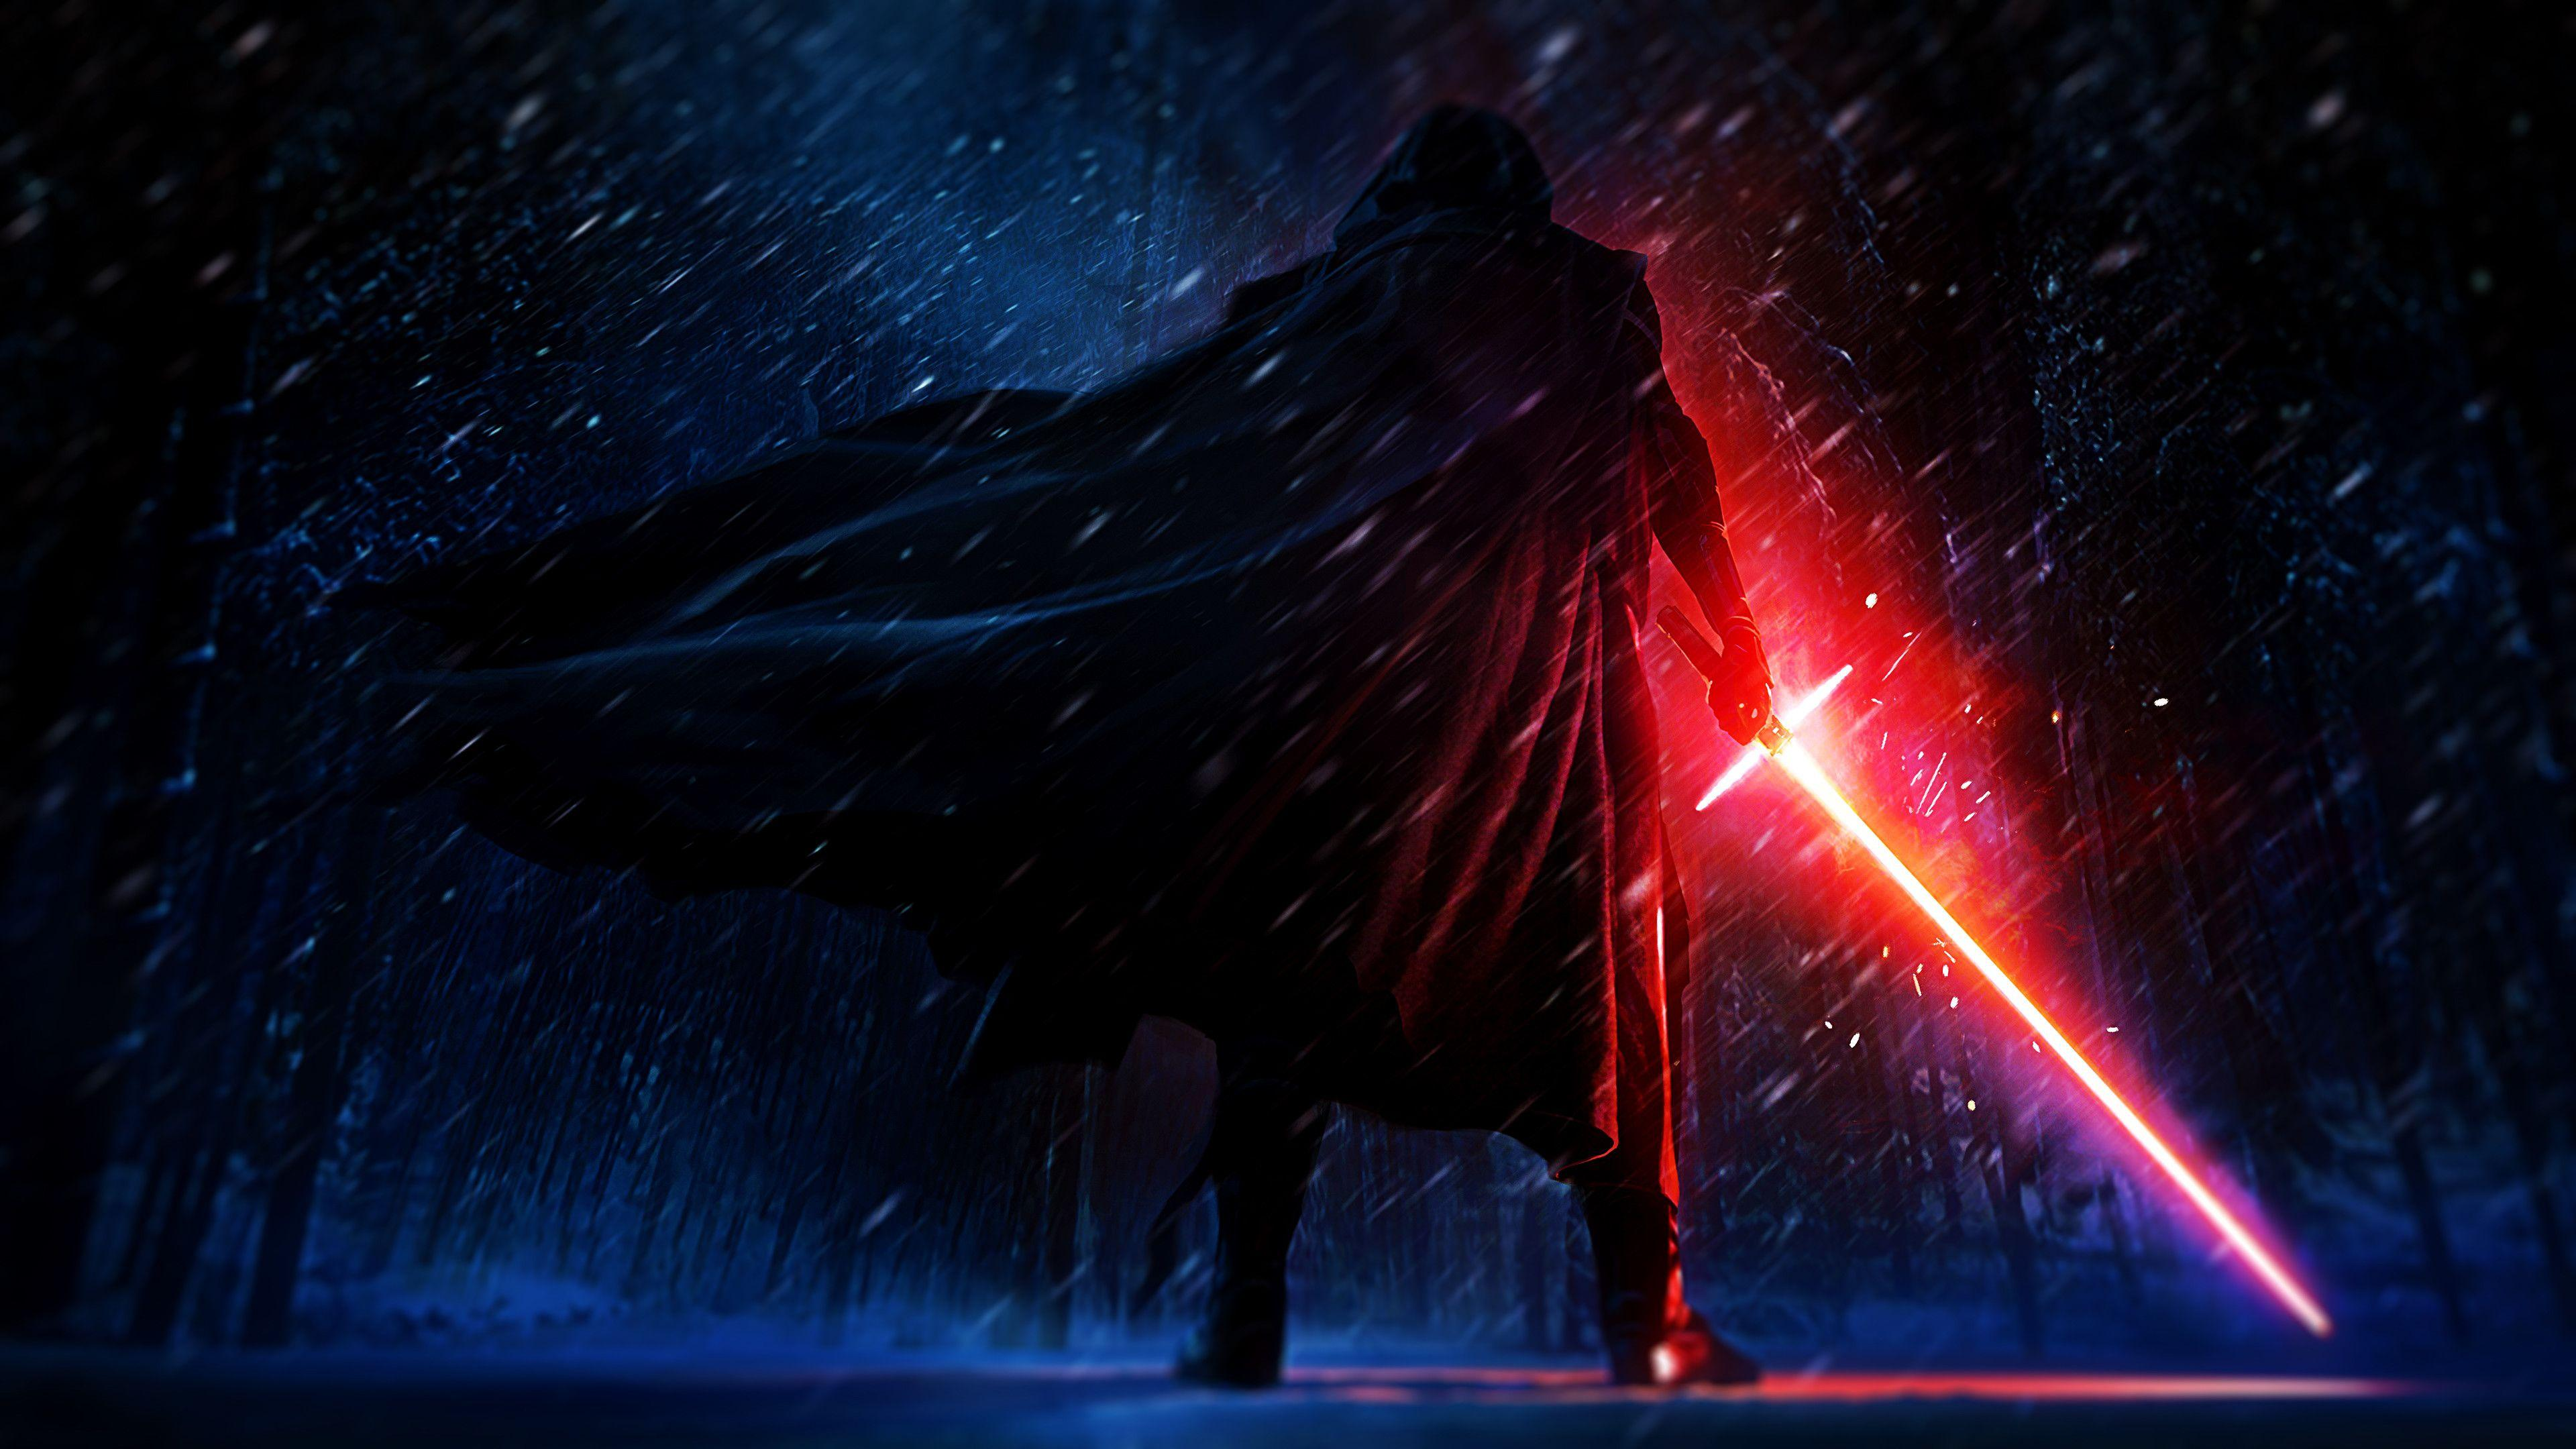 Star Wars 4k Wallpapers Wallpaper Cave